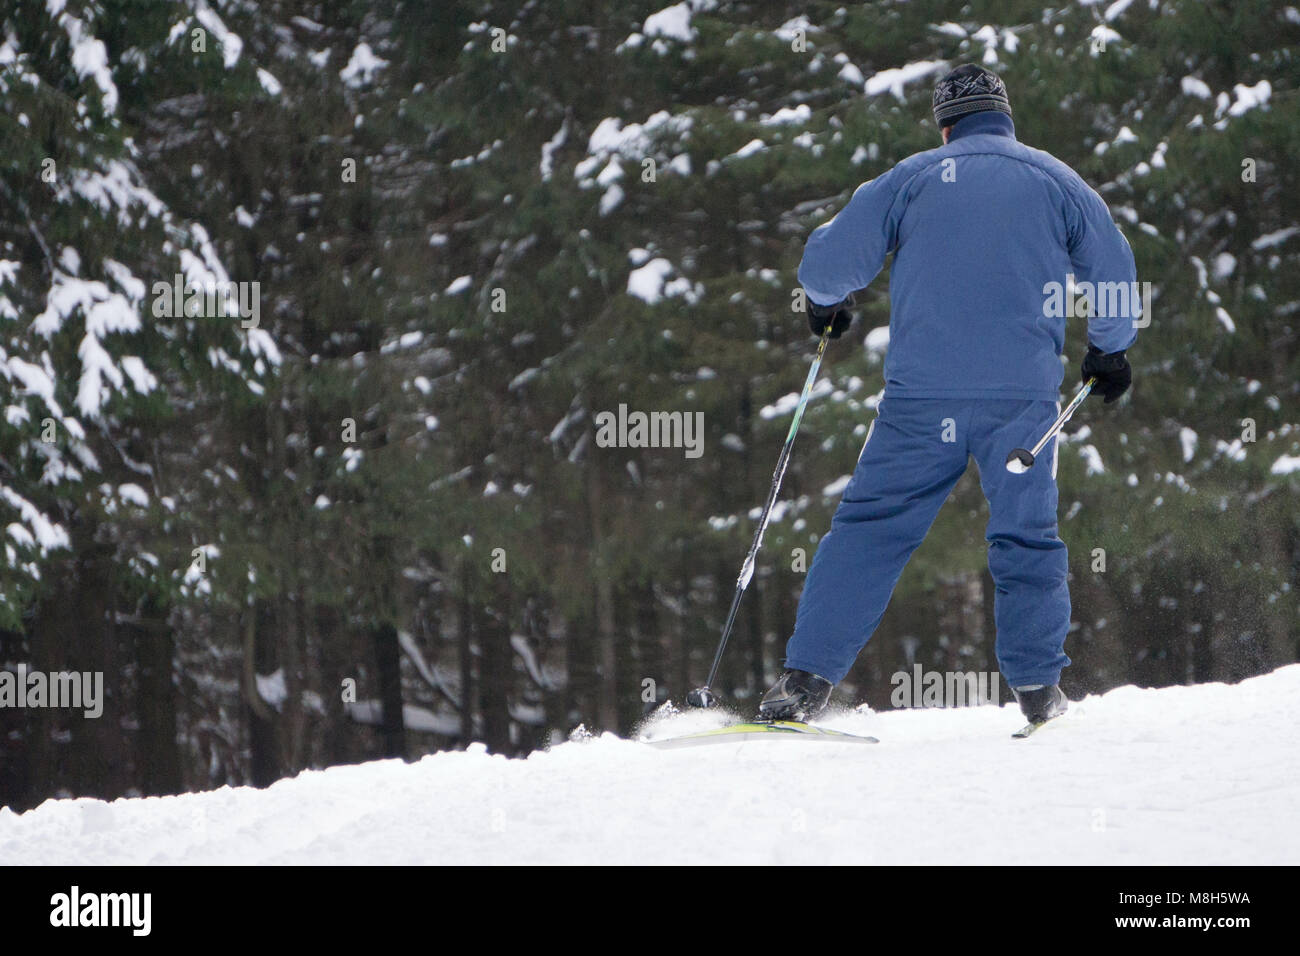 Boy skier in a ski suit and hat standing on snowy slope - Stock Image